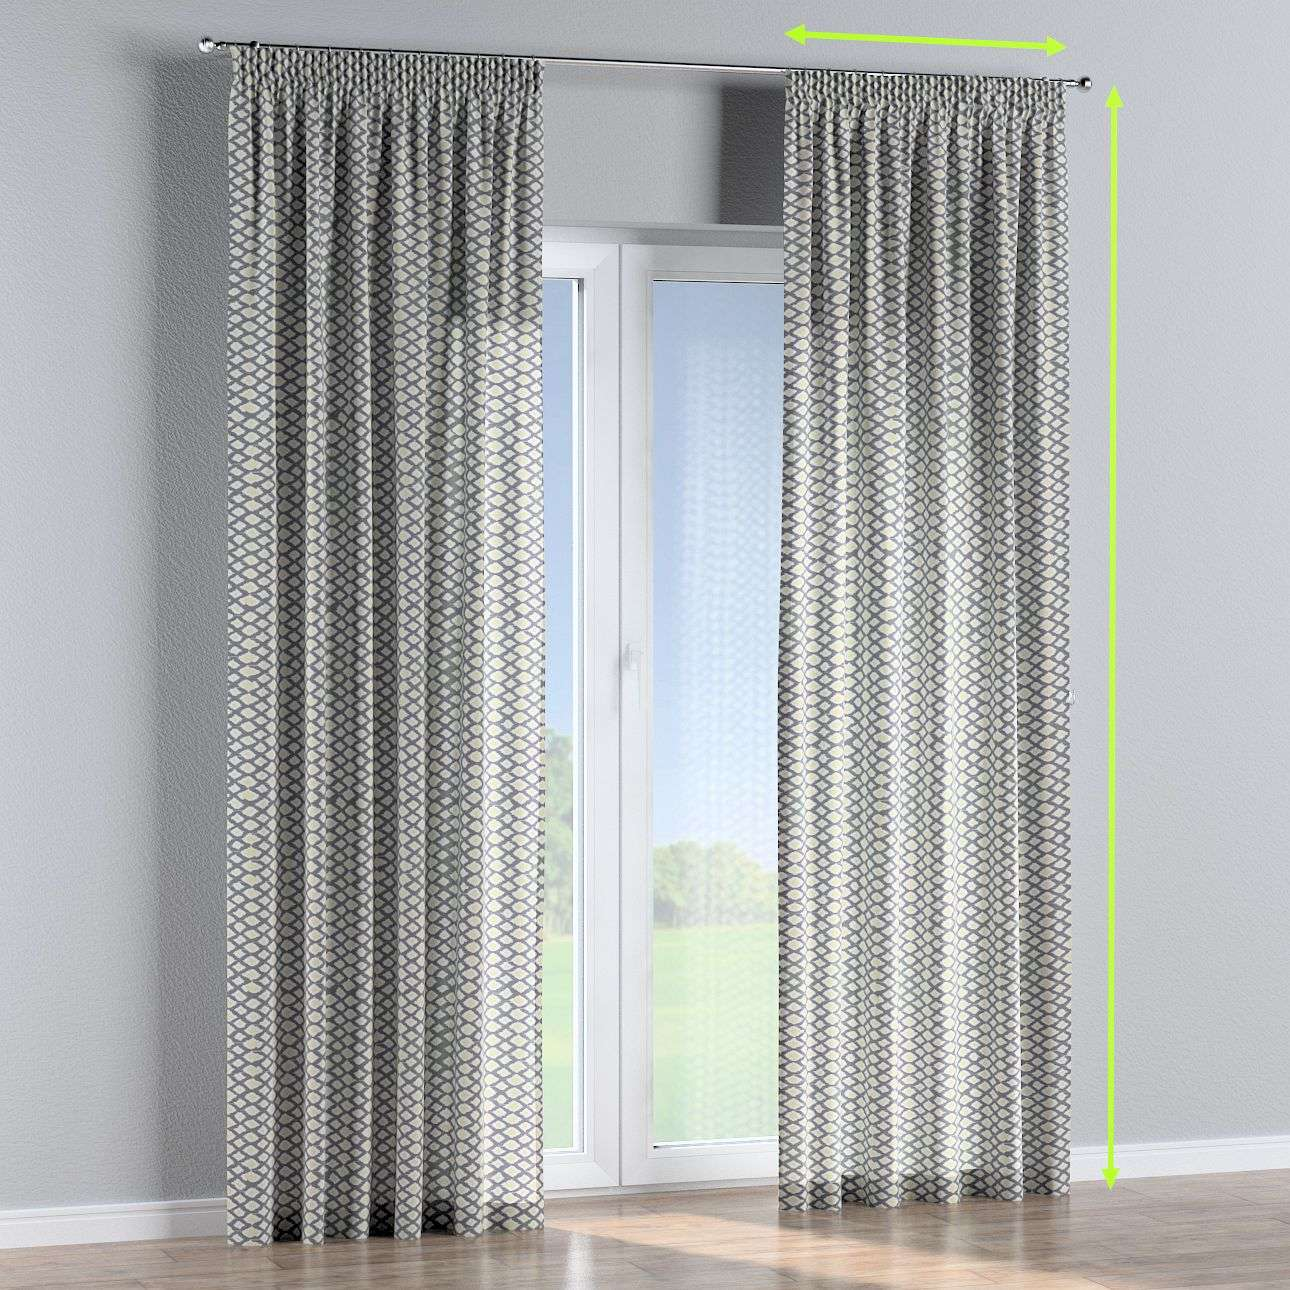 Pencil pleat curtains in collection Comic Book & Geo Prints, fabric: 141-21